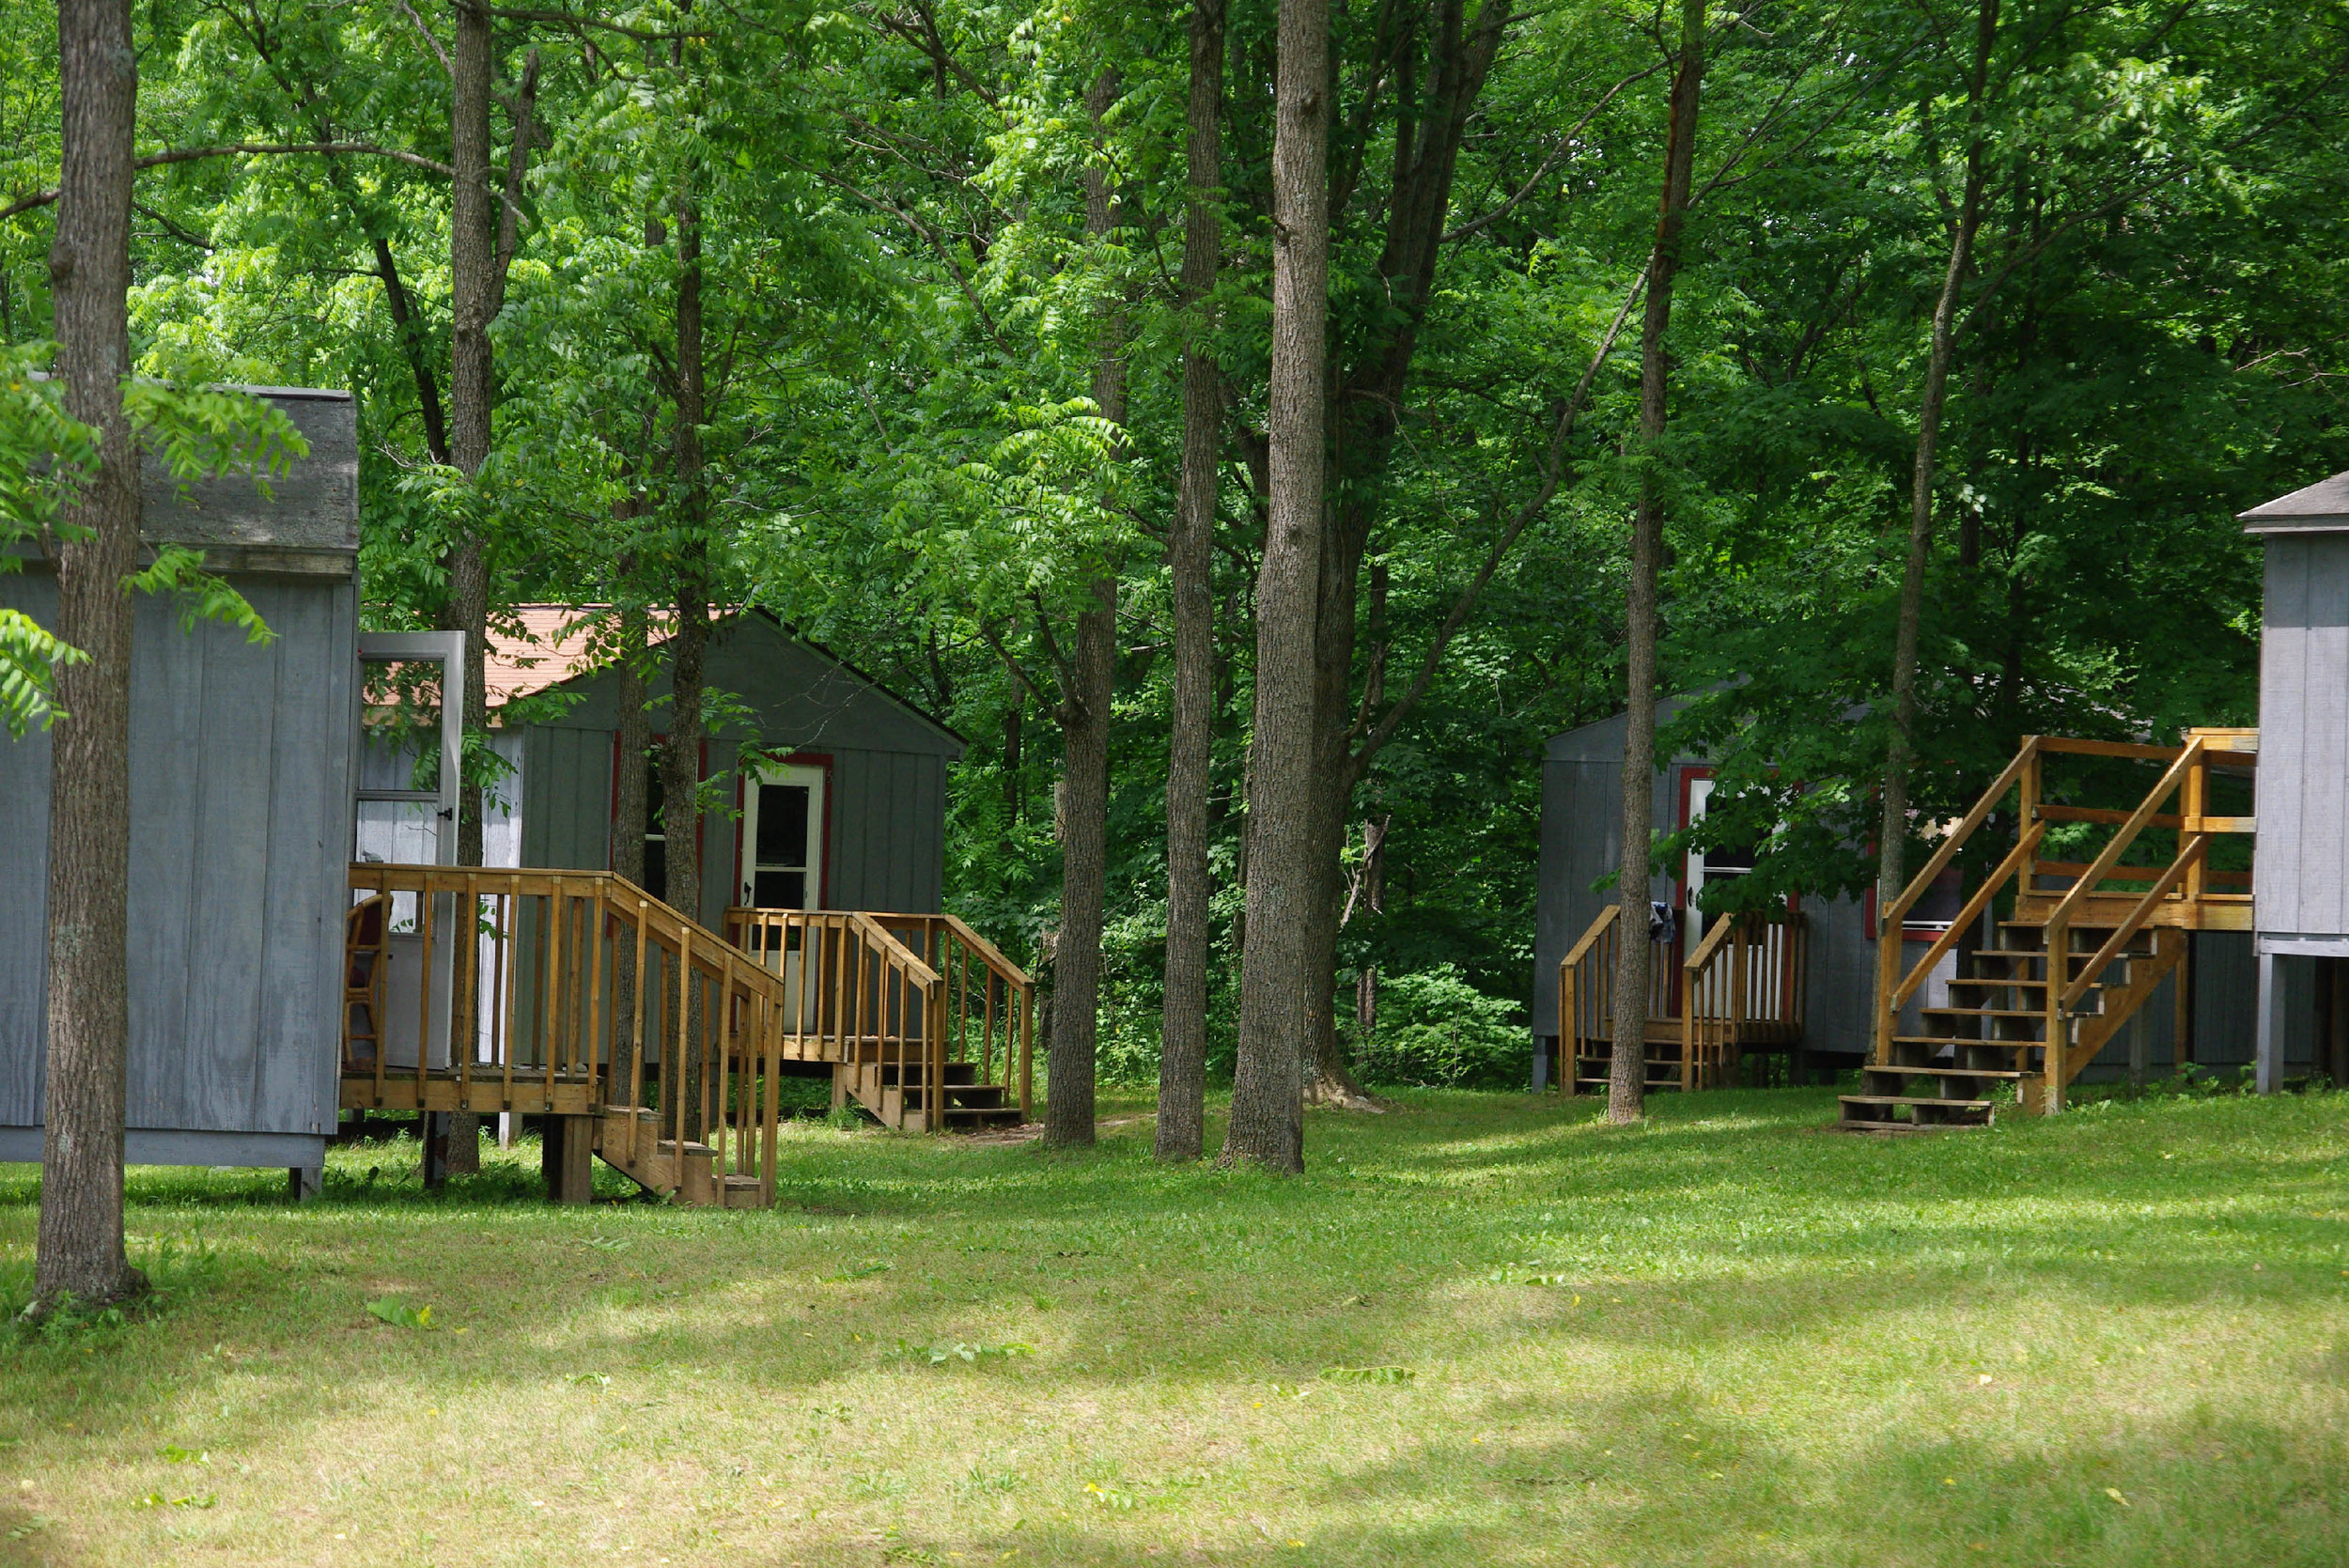 Some of the cabins at Camp.